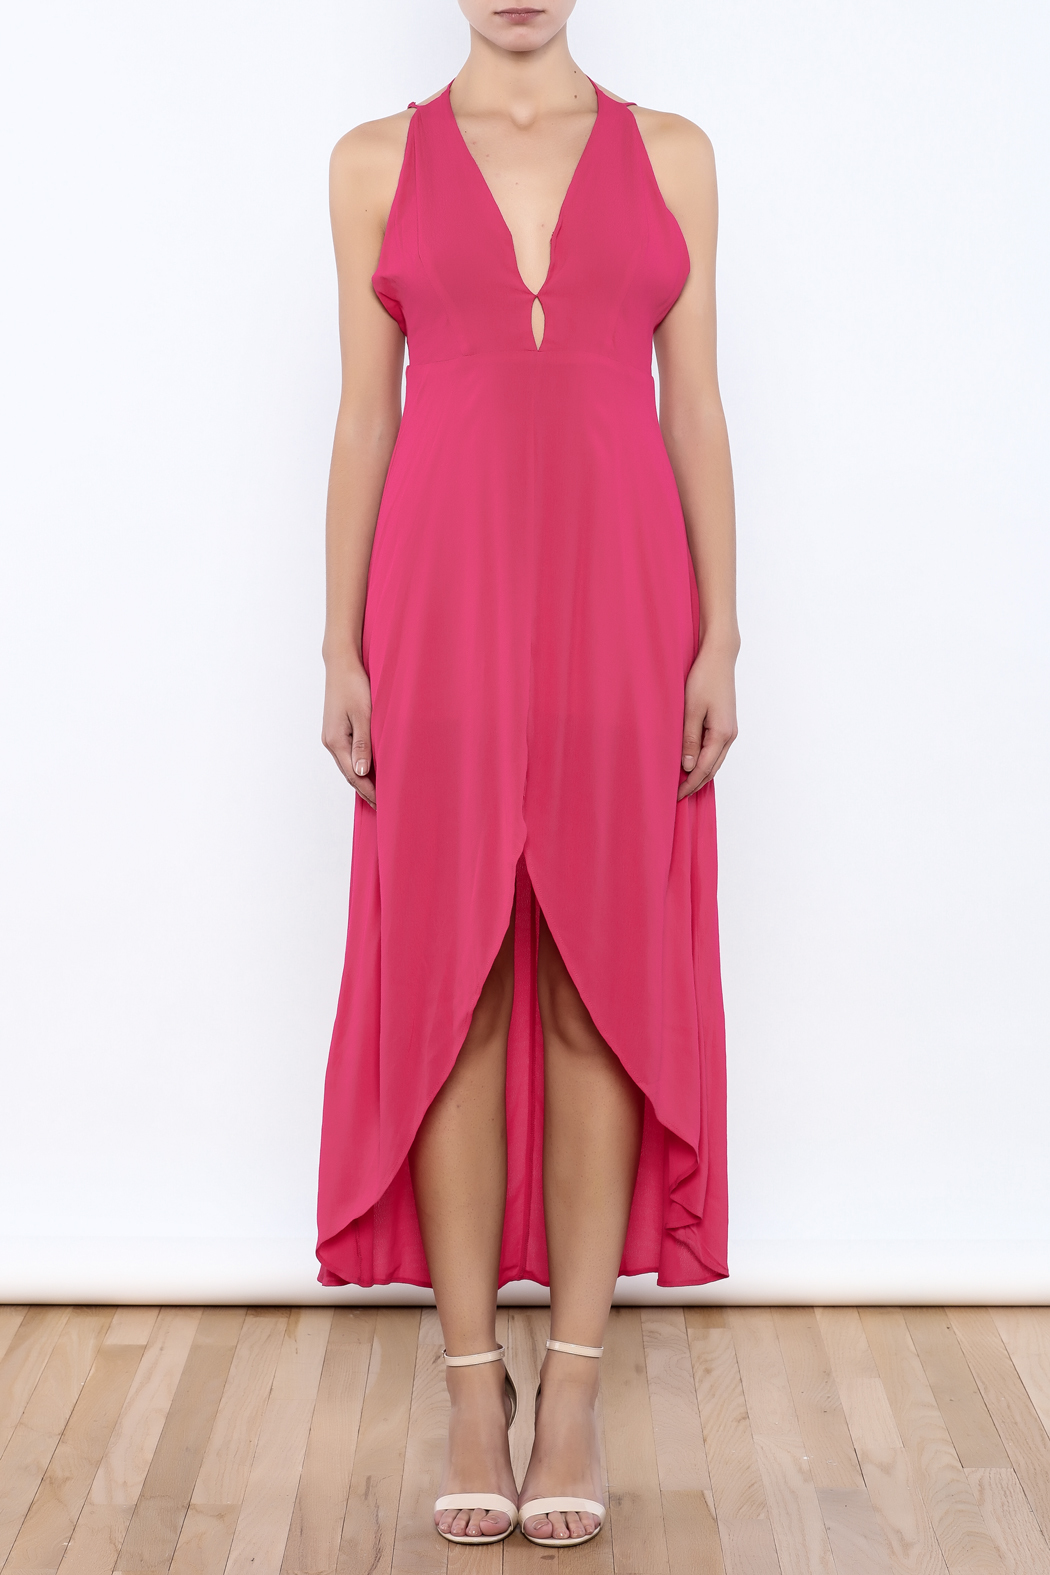 Bacio Pink Dress - Front Cropped Image